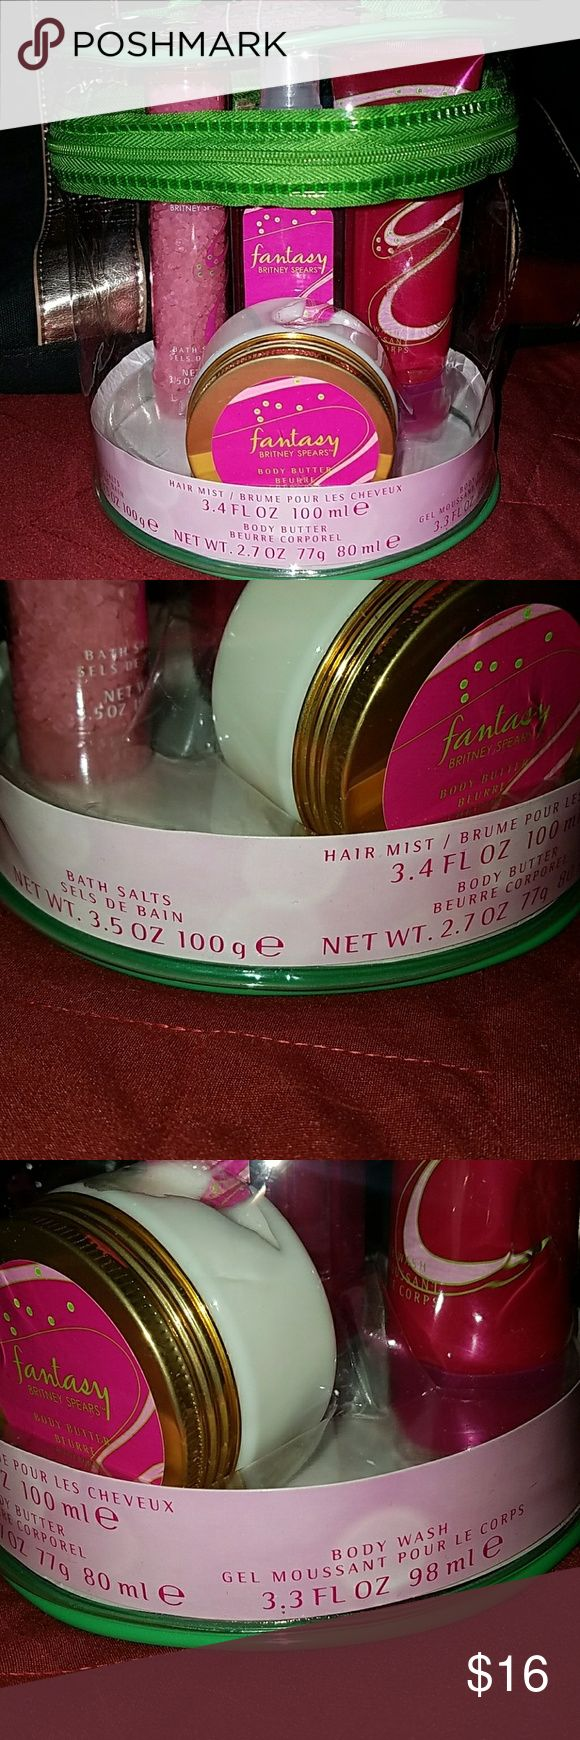 New Britney Spears Fantasy gift set Great for Easter or mothers day.   New Britney Spears Fantasy bath salts hair Mist body butter and body wash gift set with clear bag. jcpenney Makeup